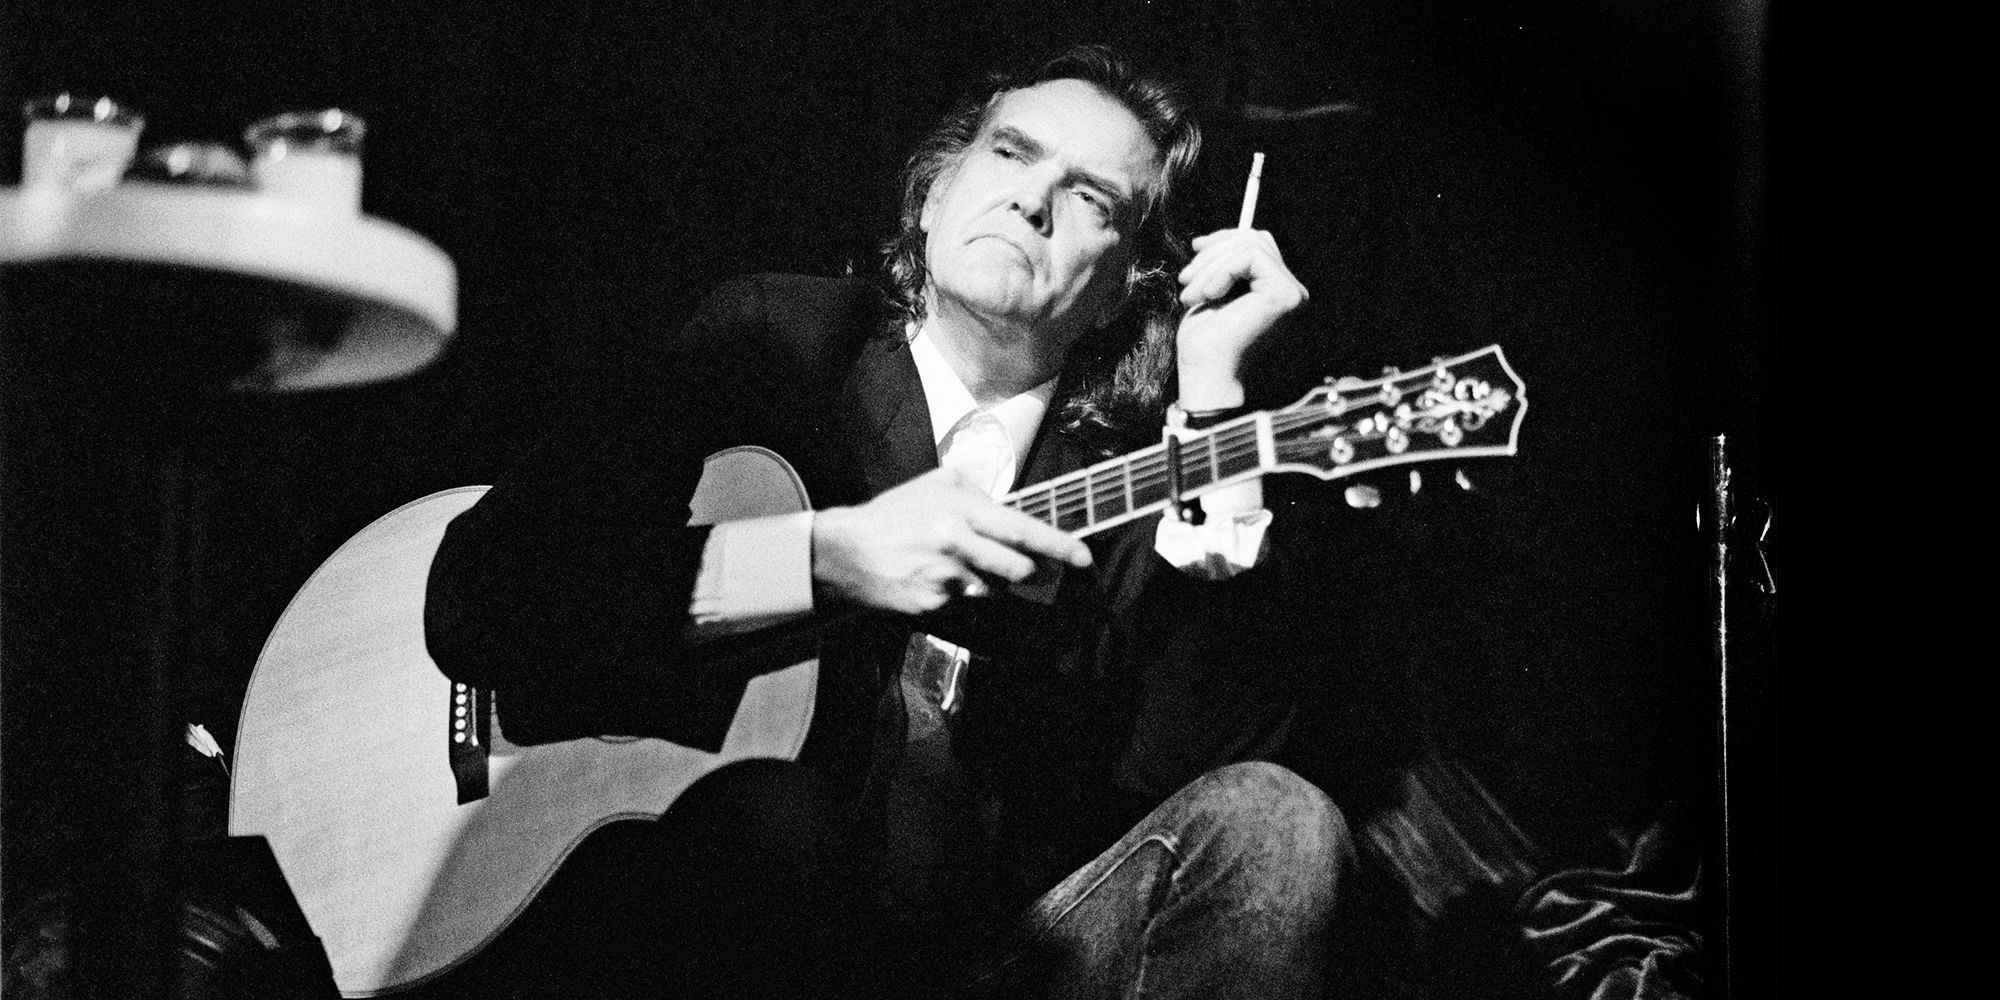 Rip Guy Clark Who Was There For Me When My Father Slipped Away